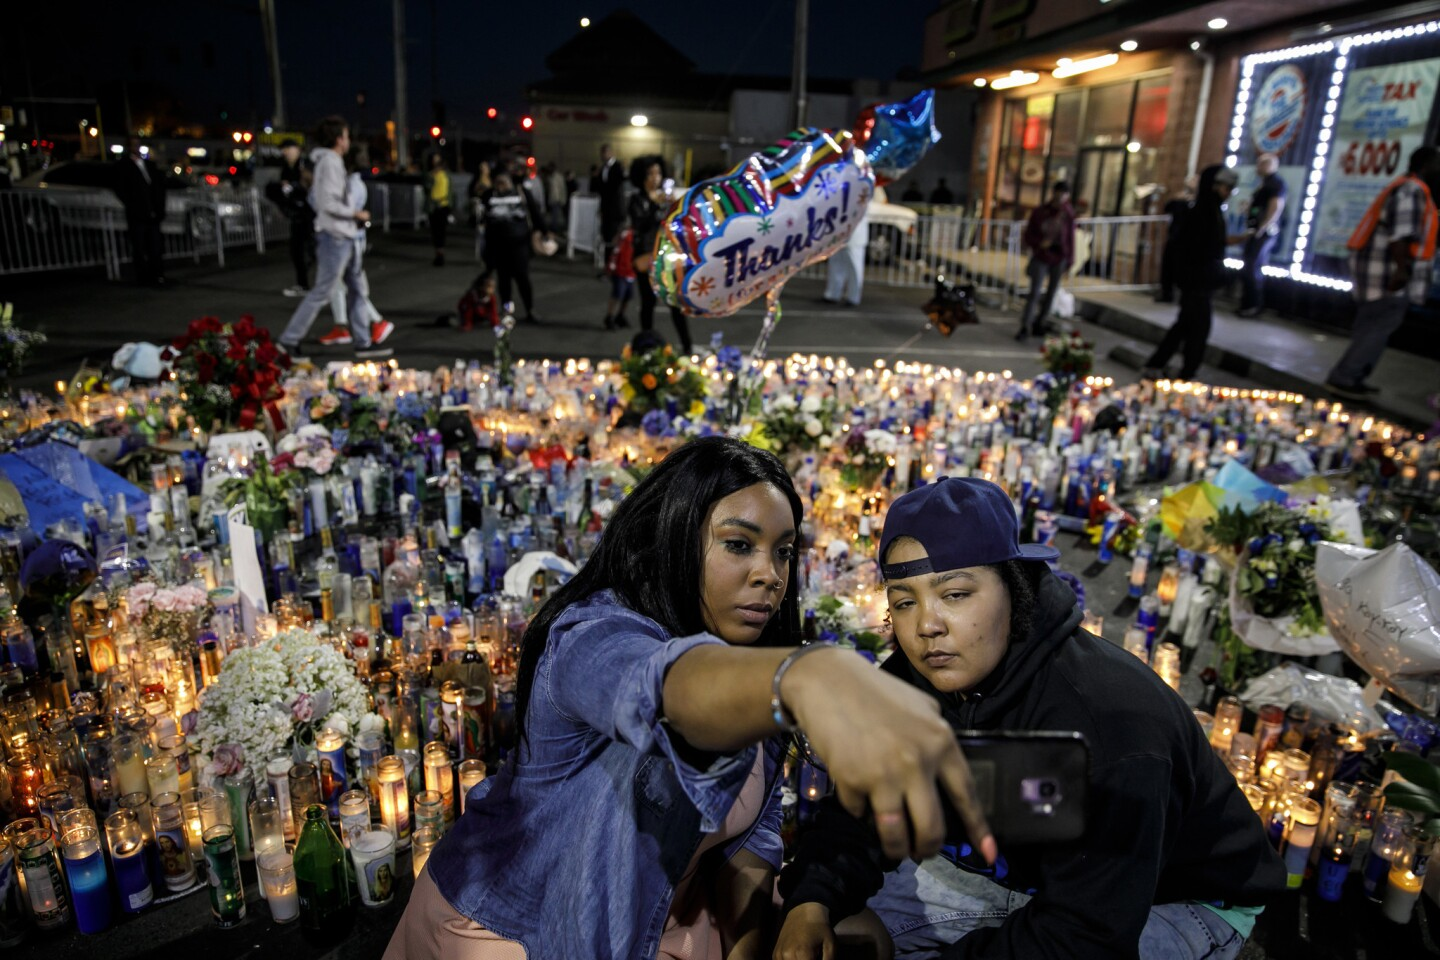 Kiara Career, left, and Tadow McReynolds, from Minneapolis, take a selfie at the Nipsey Hussle memorial outside his Marathon Clothing store in Los Angeles.